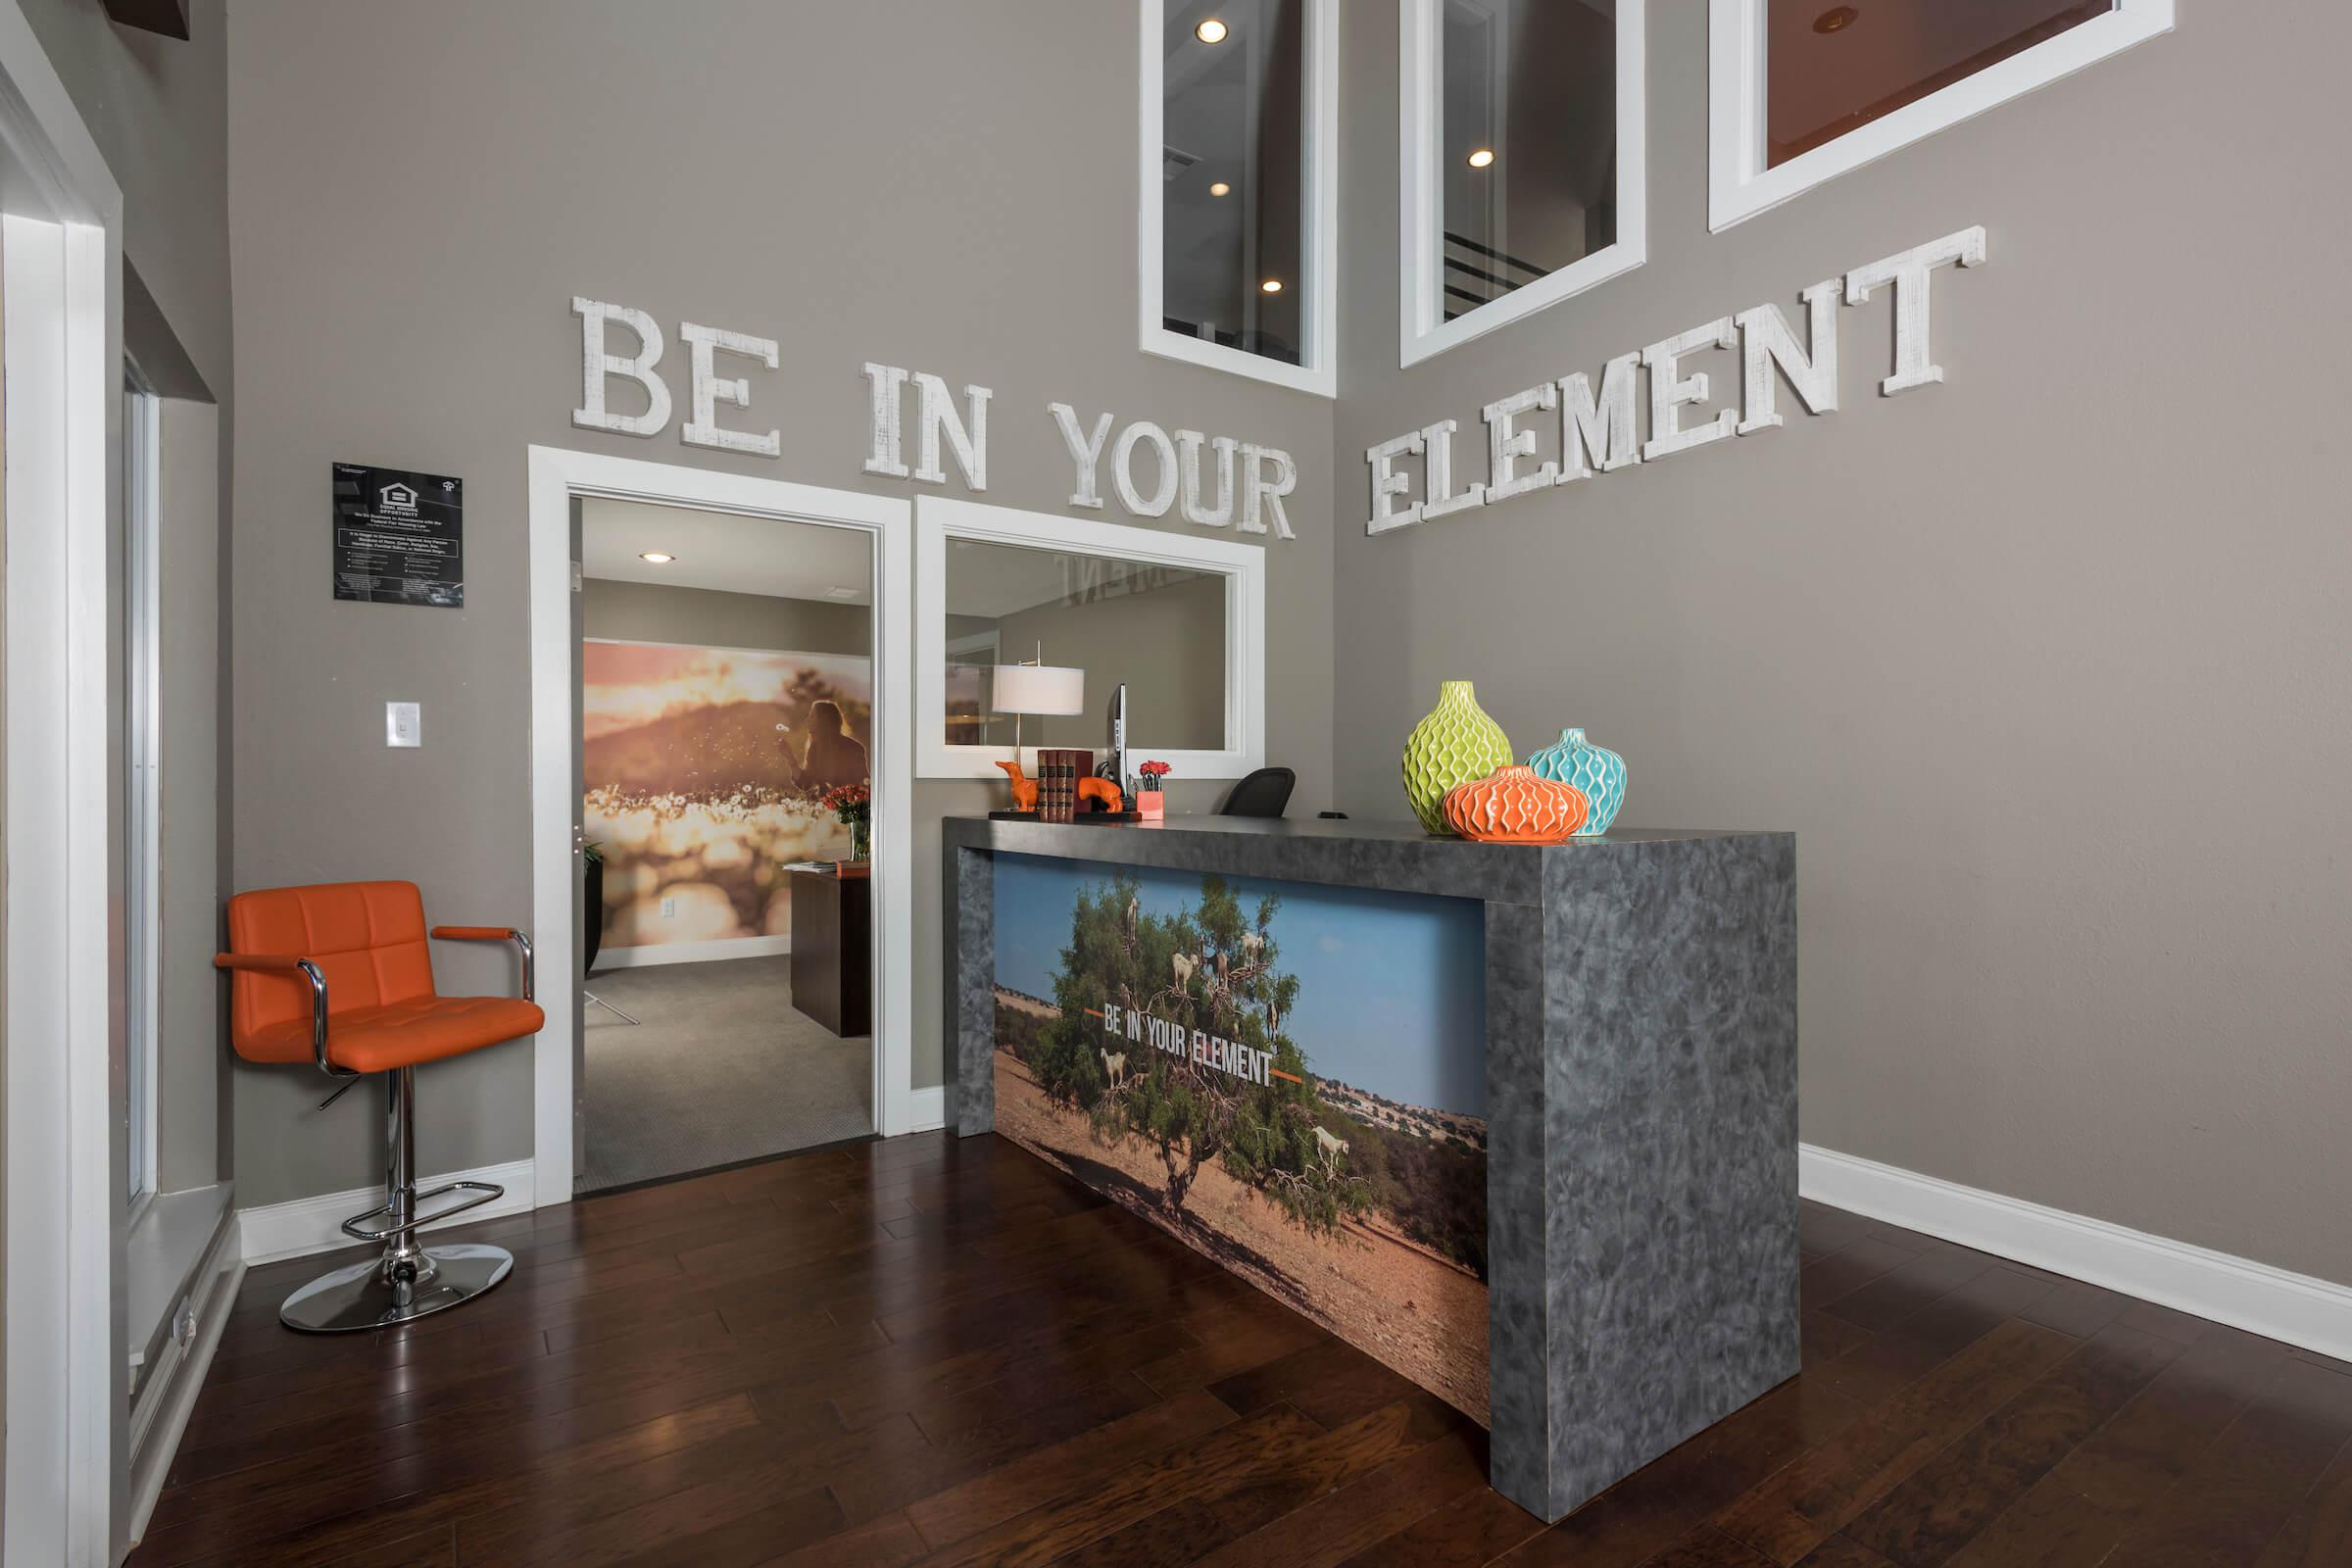 One bedroom apartments for rent at Element in Arlington, TX